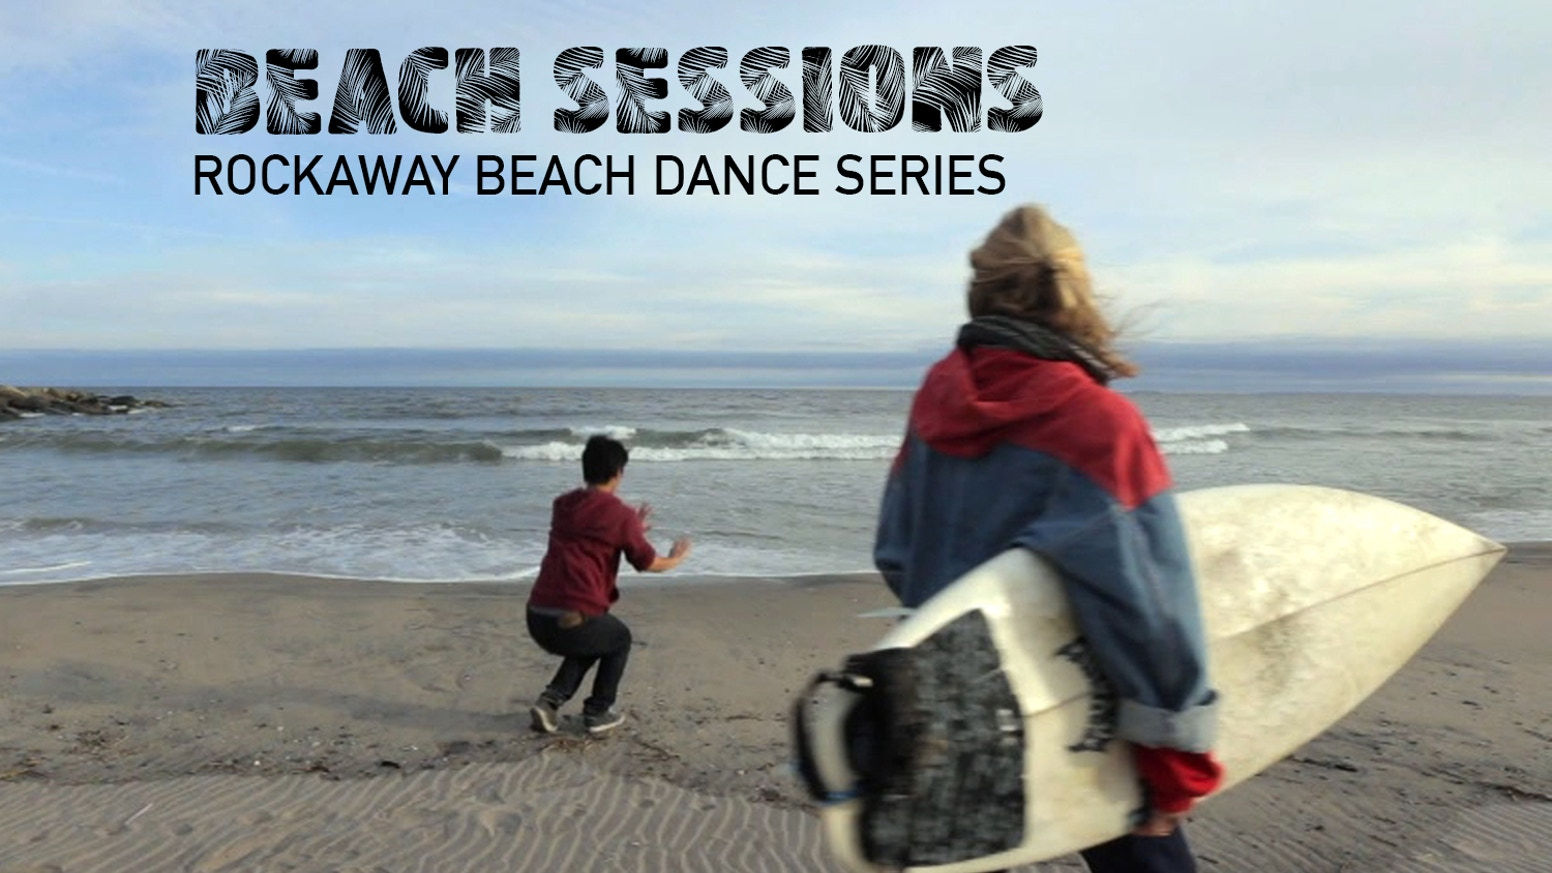 Beach Sessions kicks off its inaugural season on August 1st and continues for four consecutive Saturdays with two free performances at 4pm and 6pm, through August 22nd, 2015.